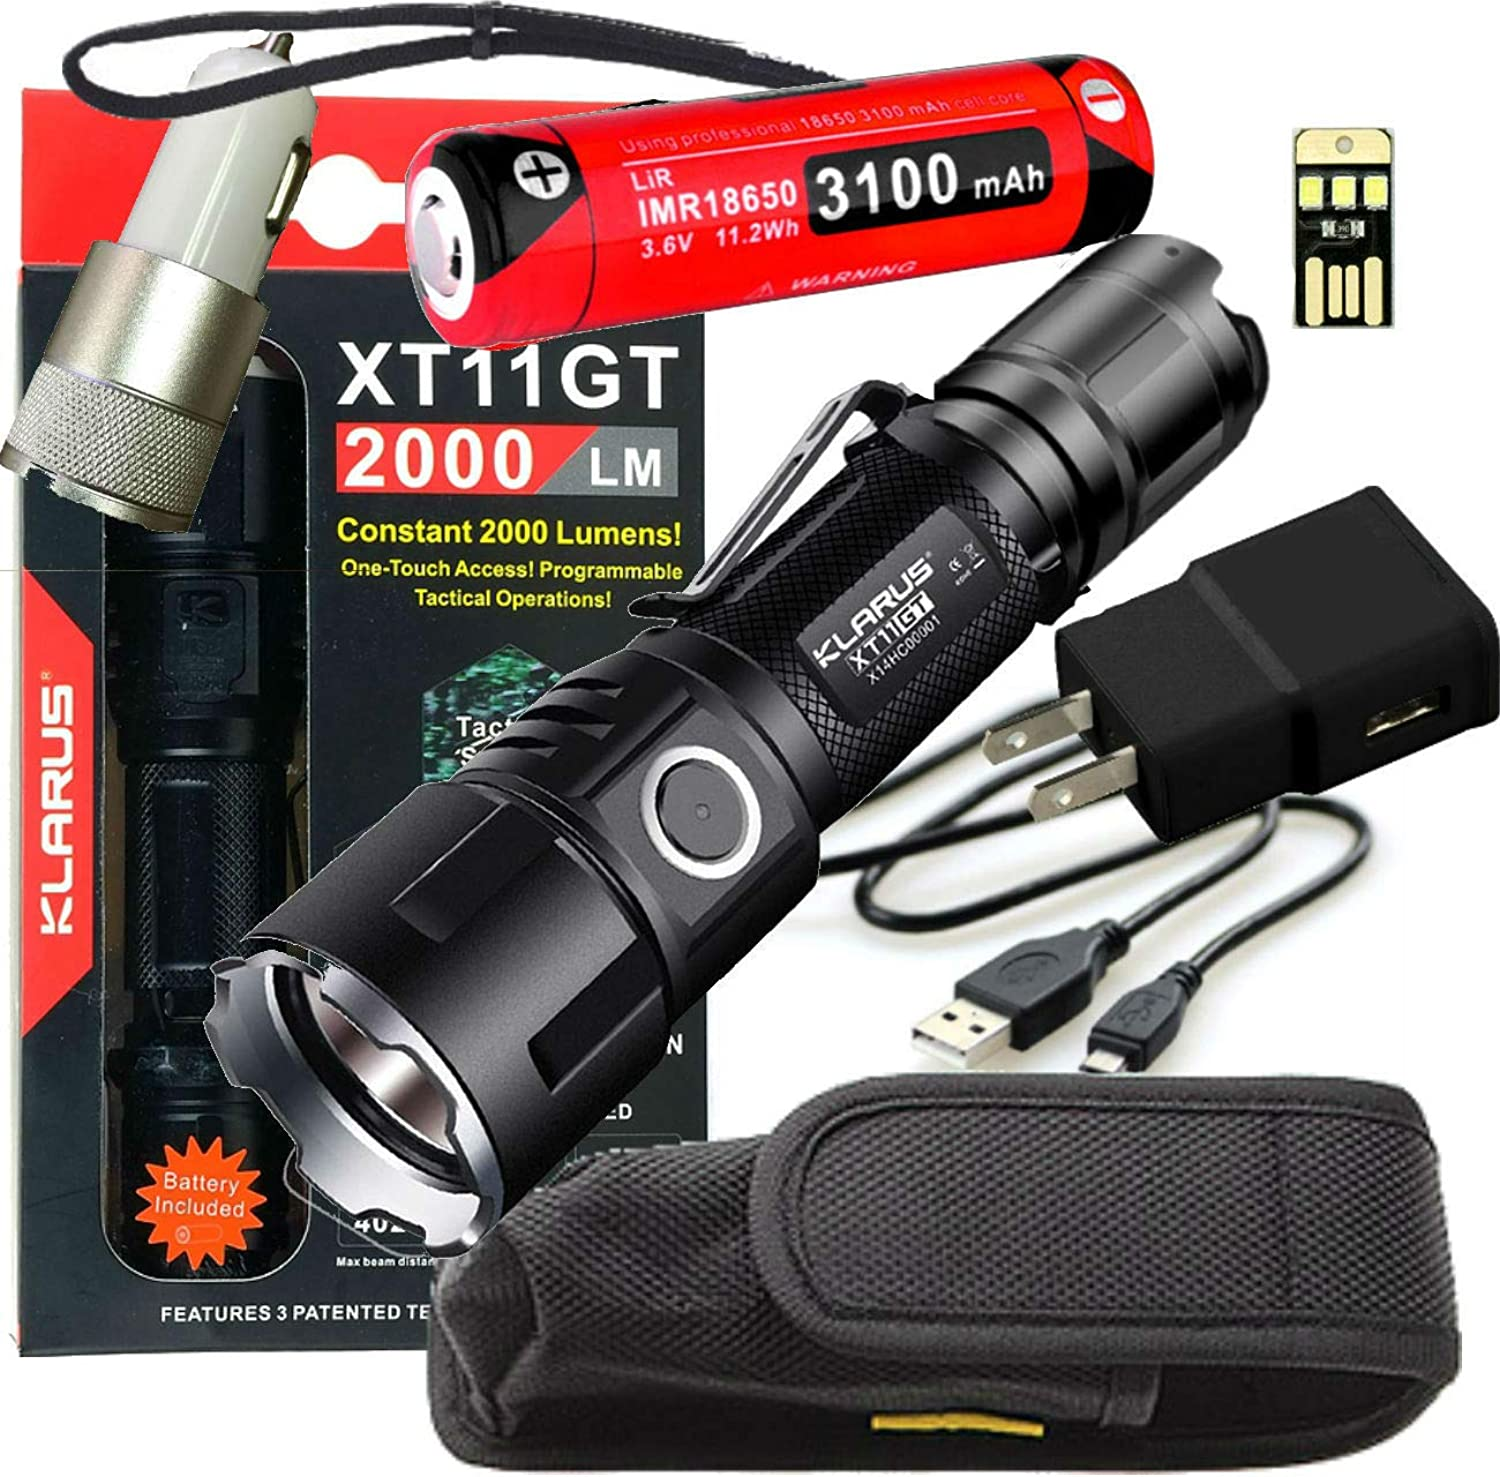 Klarus Upgraded XT11GT 2000 Lumens SUPER BUNDLE w  XT11GT LED Compact Rechargeable Tactical Flashlight, 18650 Battery, USB Cable, Lanyard, Holster, Pocket Clip, Car & Wall Adapter, and USB Mini Light